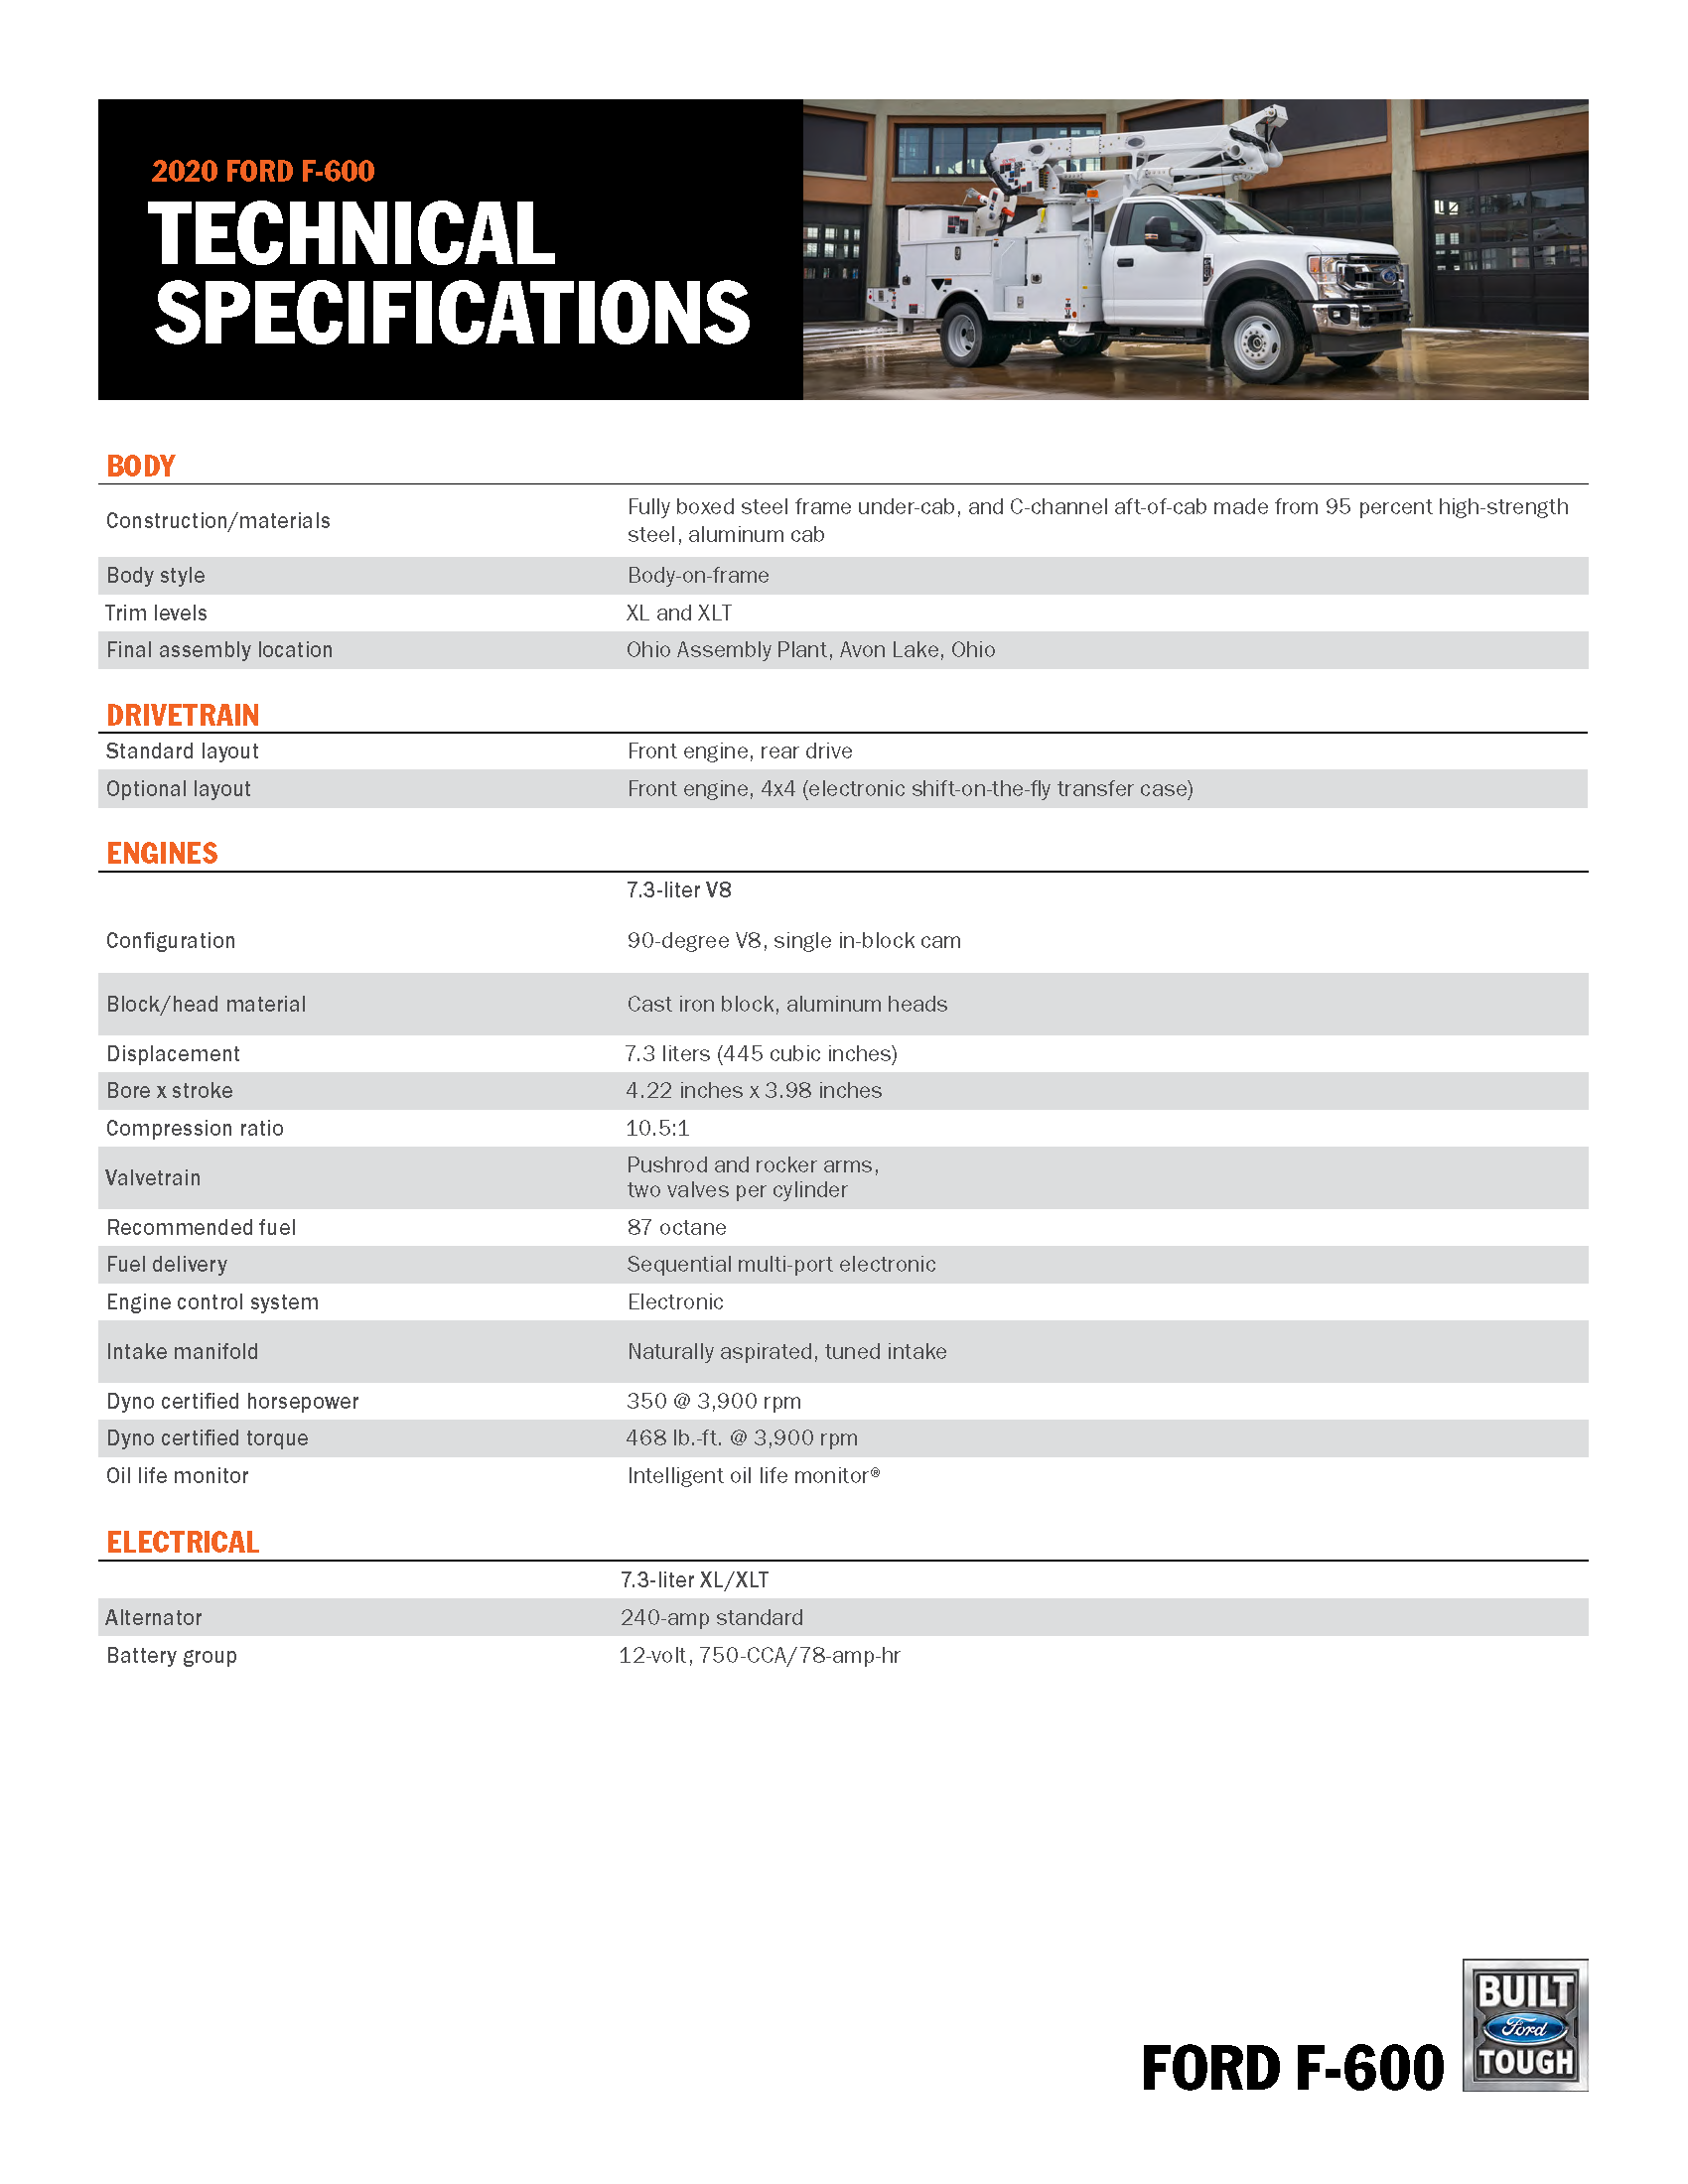 Ford F-600 Technical Spec 1